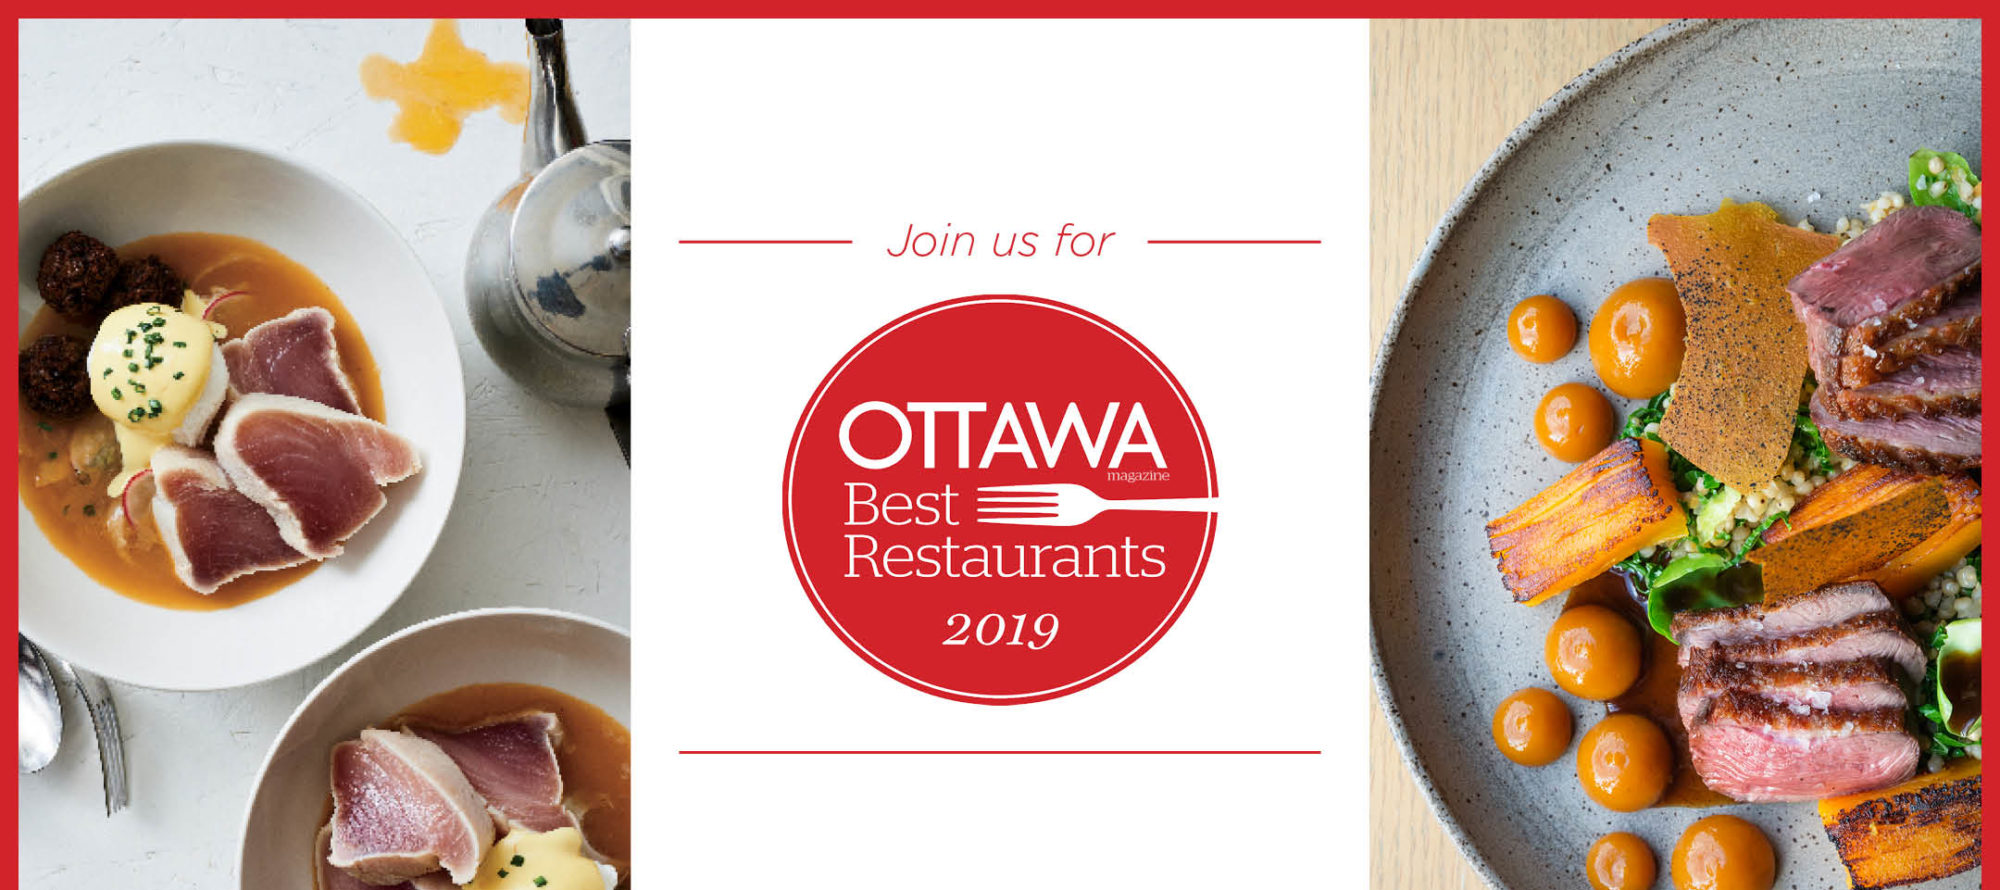 Last chance! Tickets on sale for Ottawa Magazine's Best Restaurants event on May 7